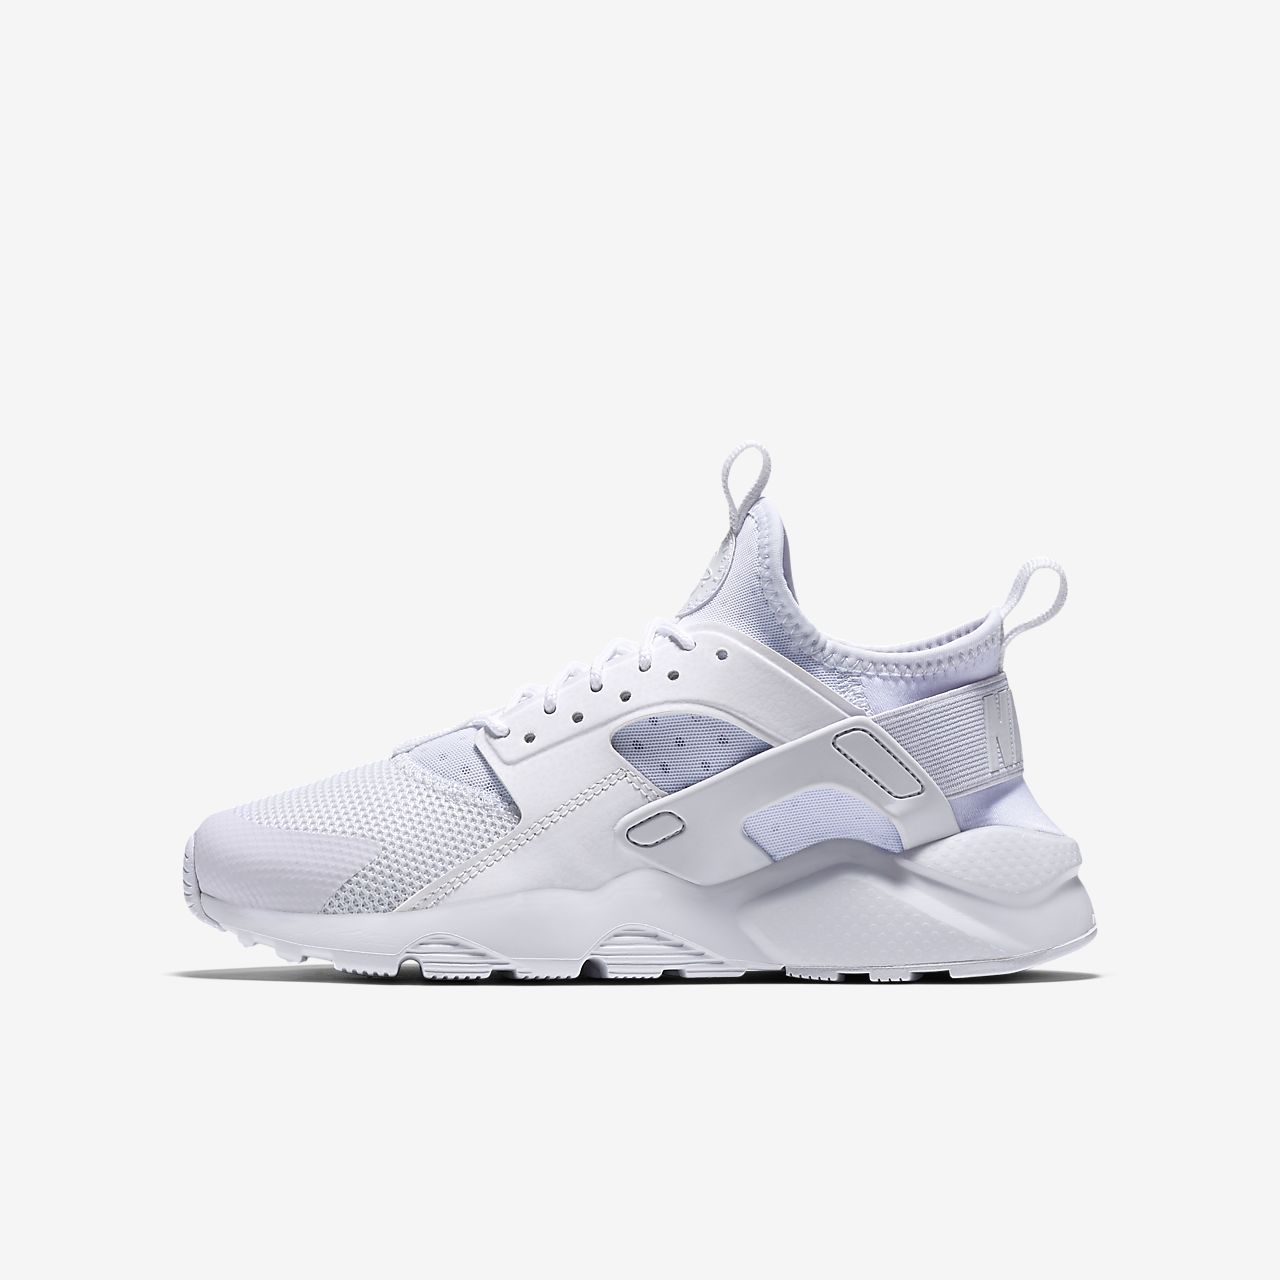 Nike Air Huarache Ultra Kinderschoen